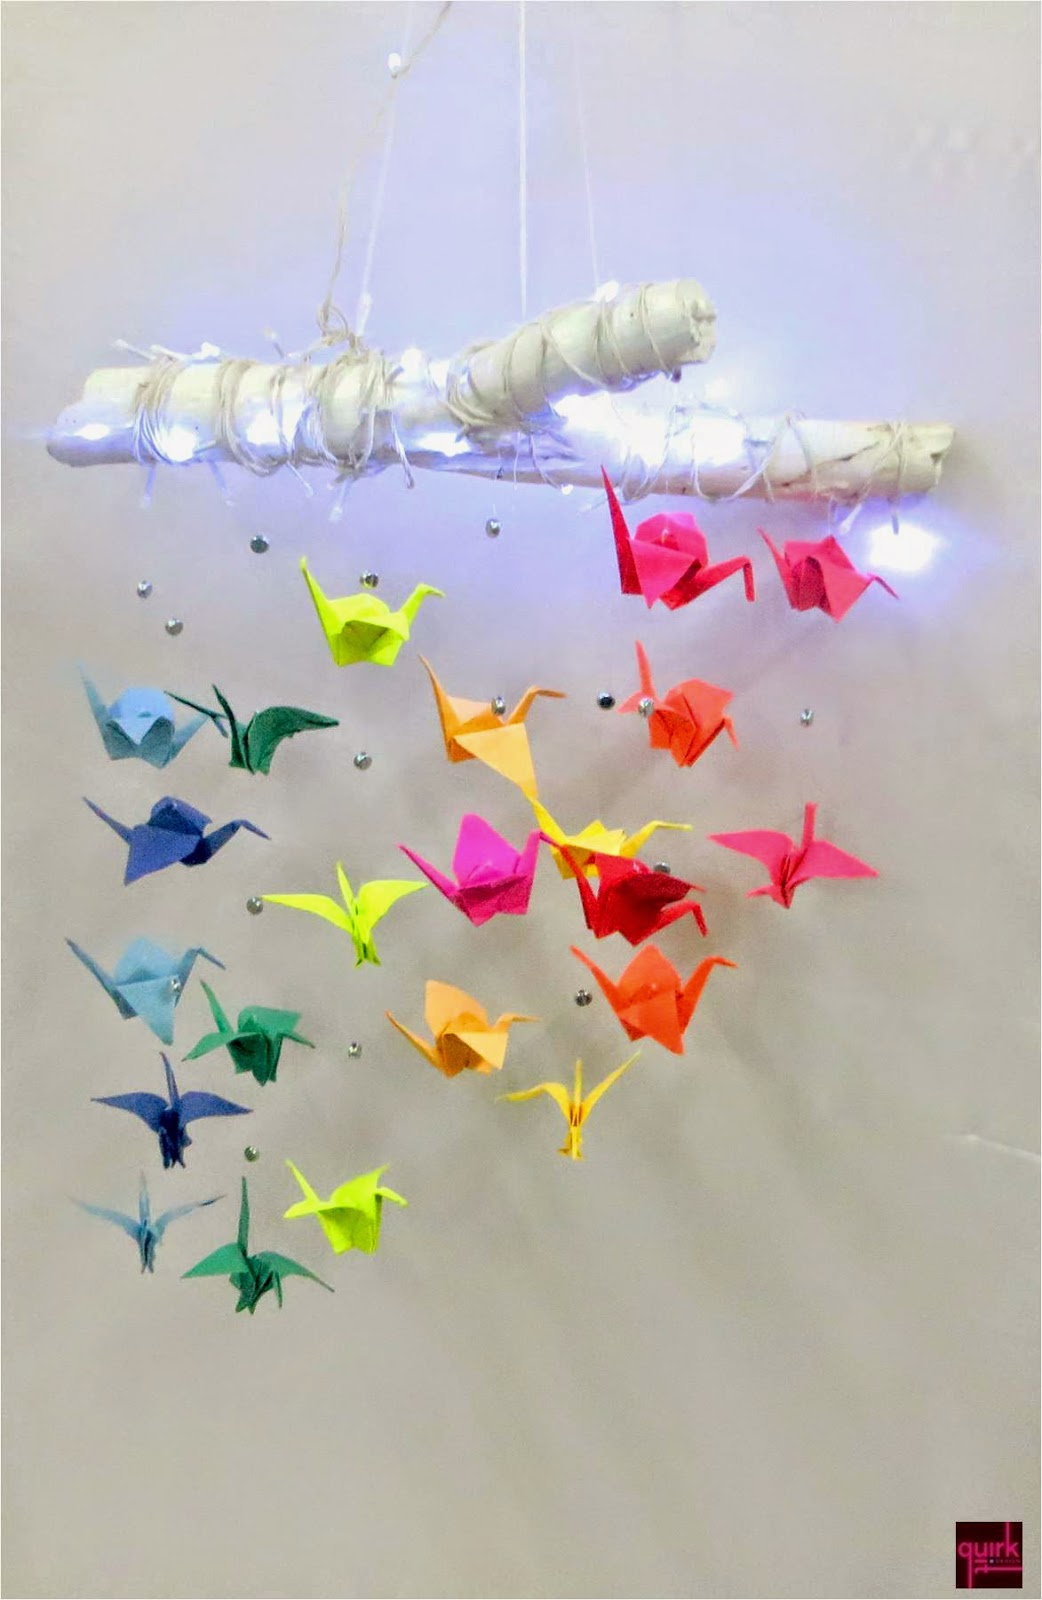 Quirk It Design_F-light of Cranes__Colorful origami cranes suspended from a lit-up wooden _DIY_Upcycle_Quirky_Home_Decor